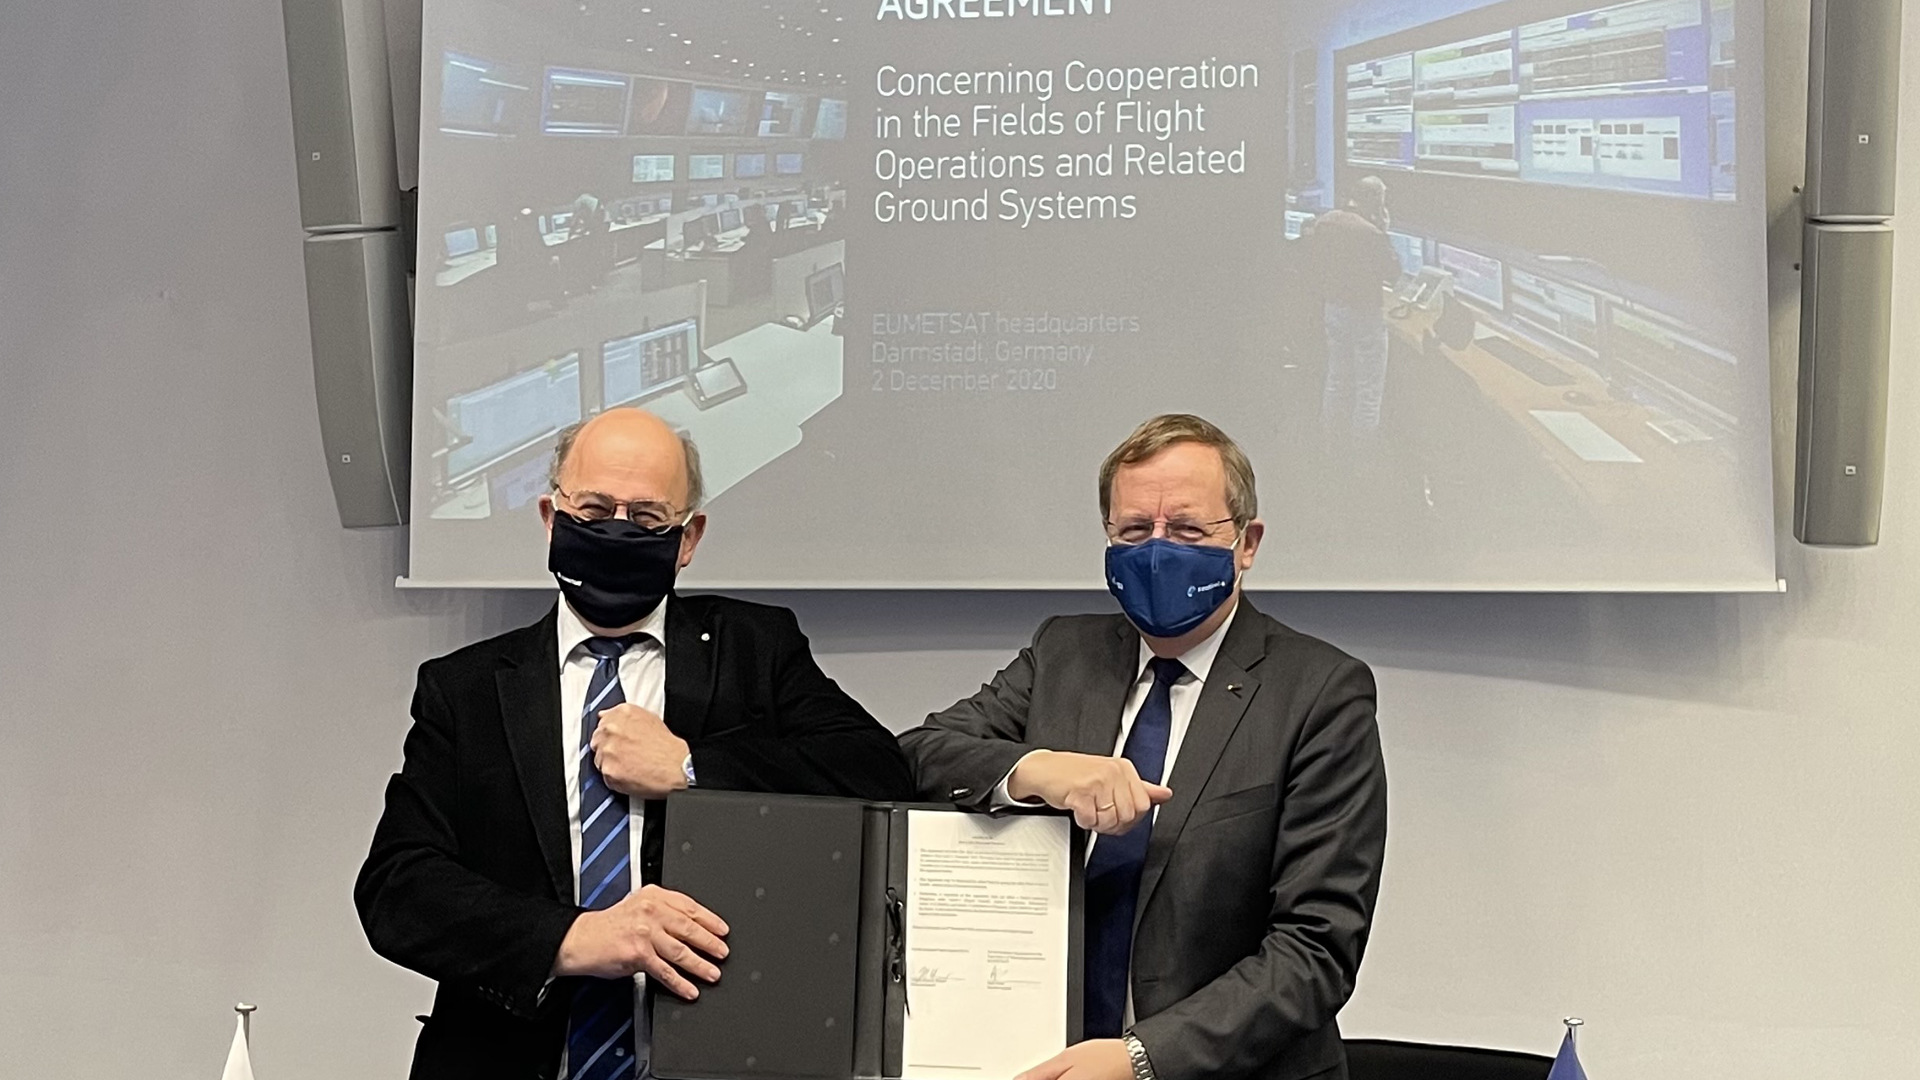 EUMETSAT Director-General Alain Ratier and ESA Director General Johann-Dietrich Wörner at the signing ceremony at EUMETSAT headquarters, Wednesday December 2, 2020